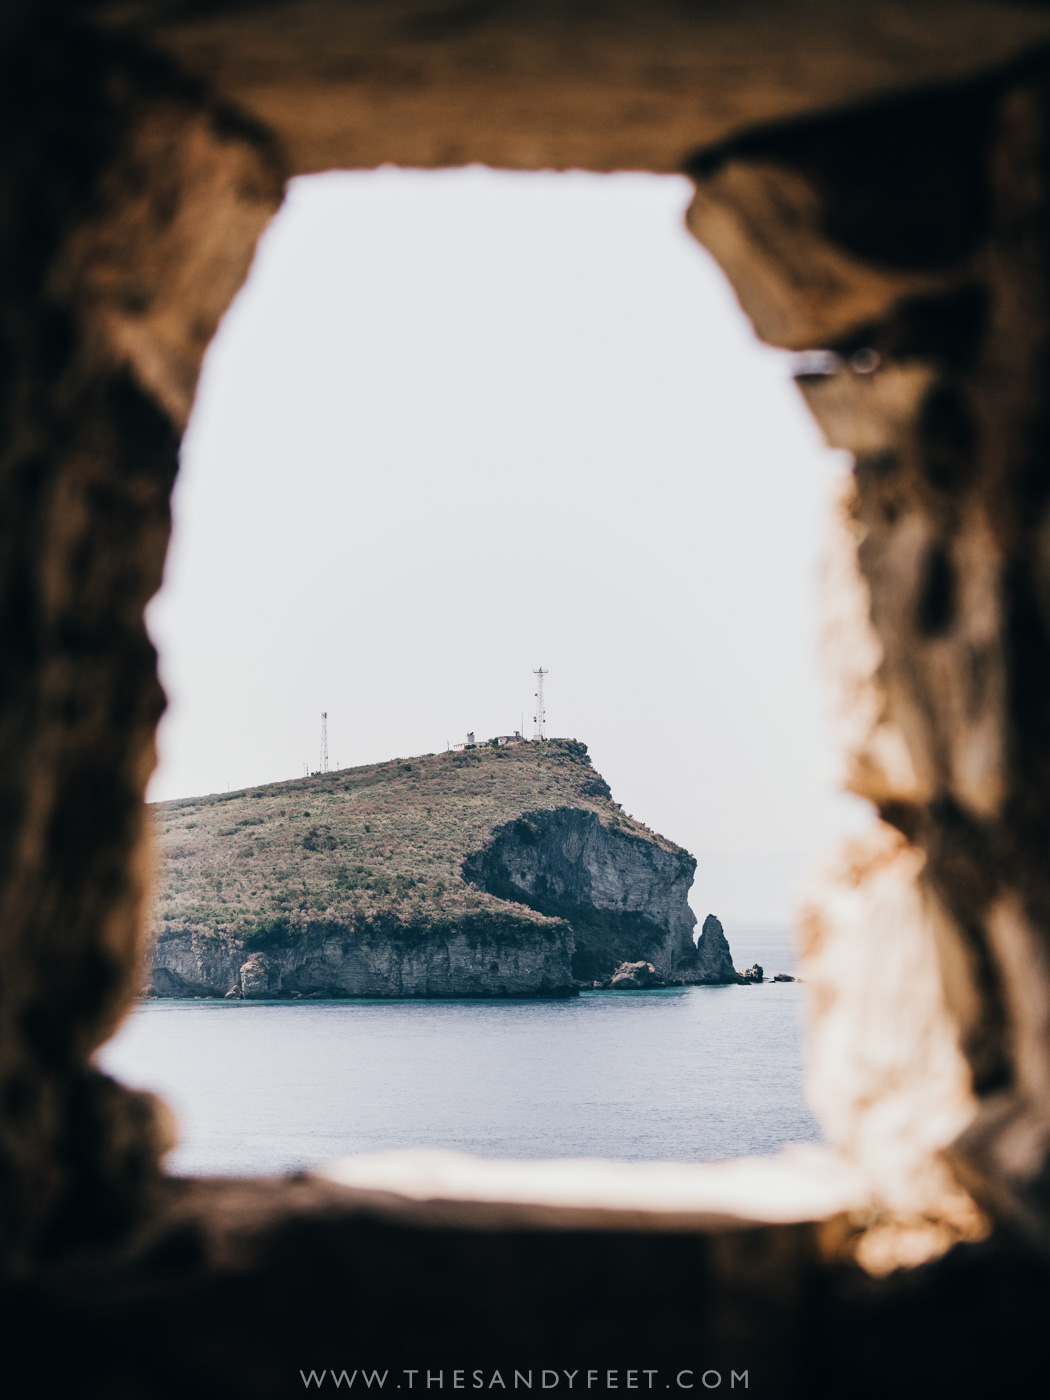 Porto Palermo Castle | A Short Guide To The Best Things To Do In Himara, Albania: Where To Go, Stay And Eat In Albania's Best Beach Town And A Firm Favorite Along The Albanian Riviera.